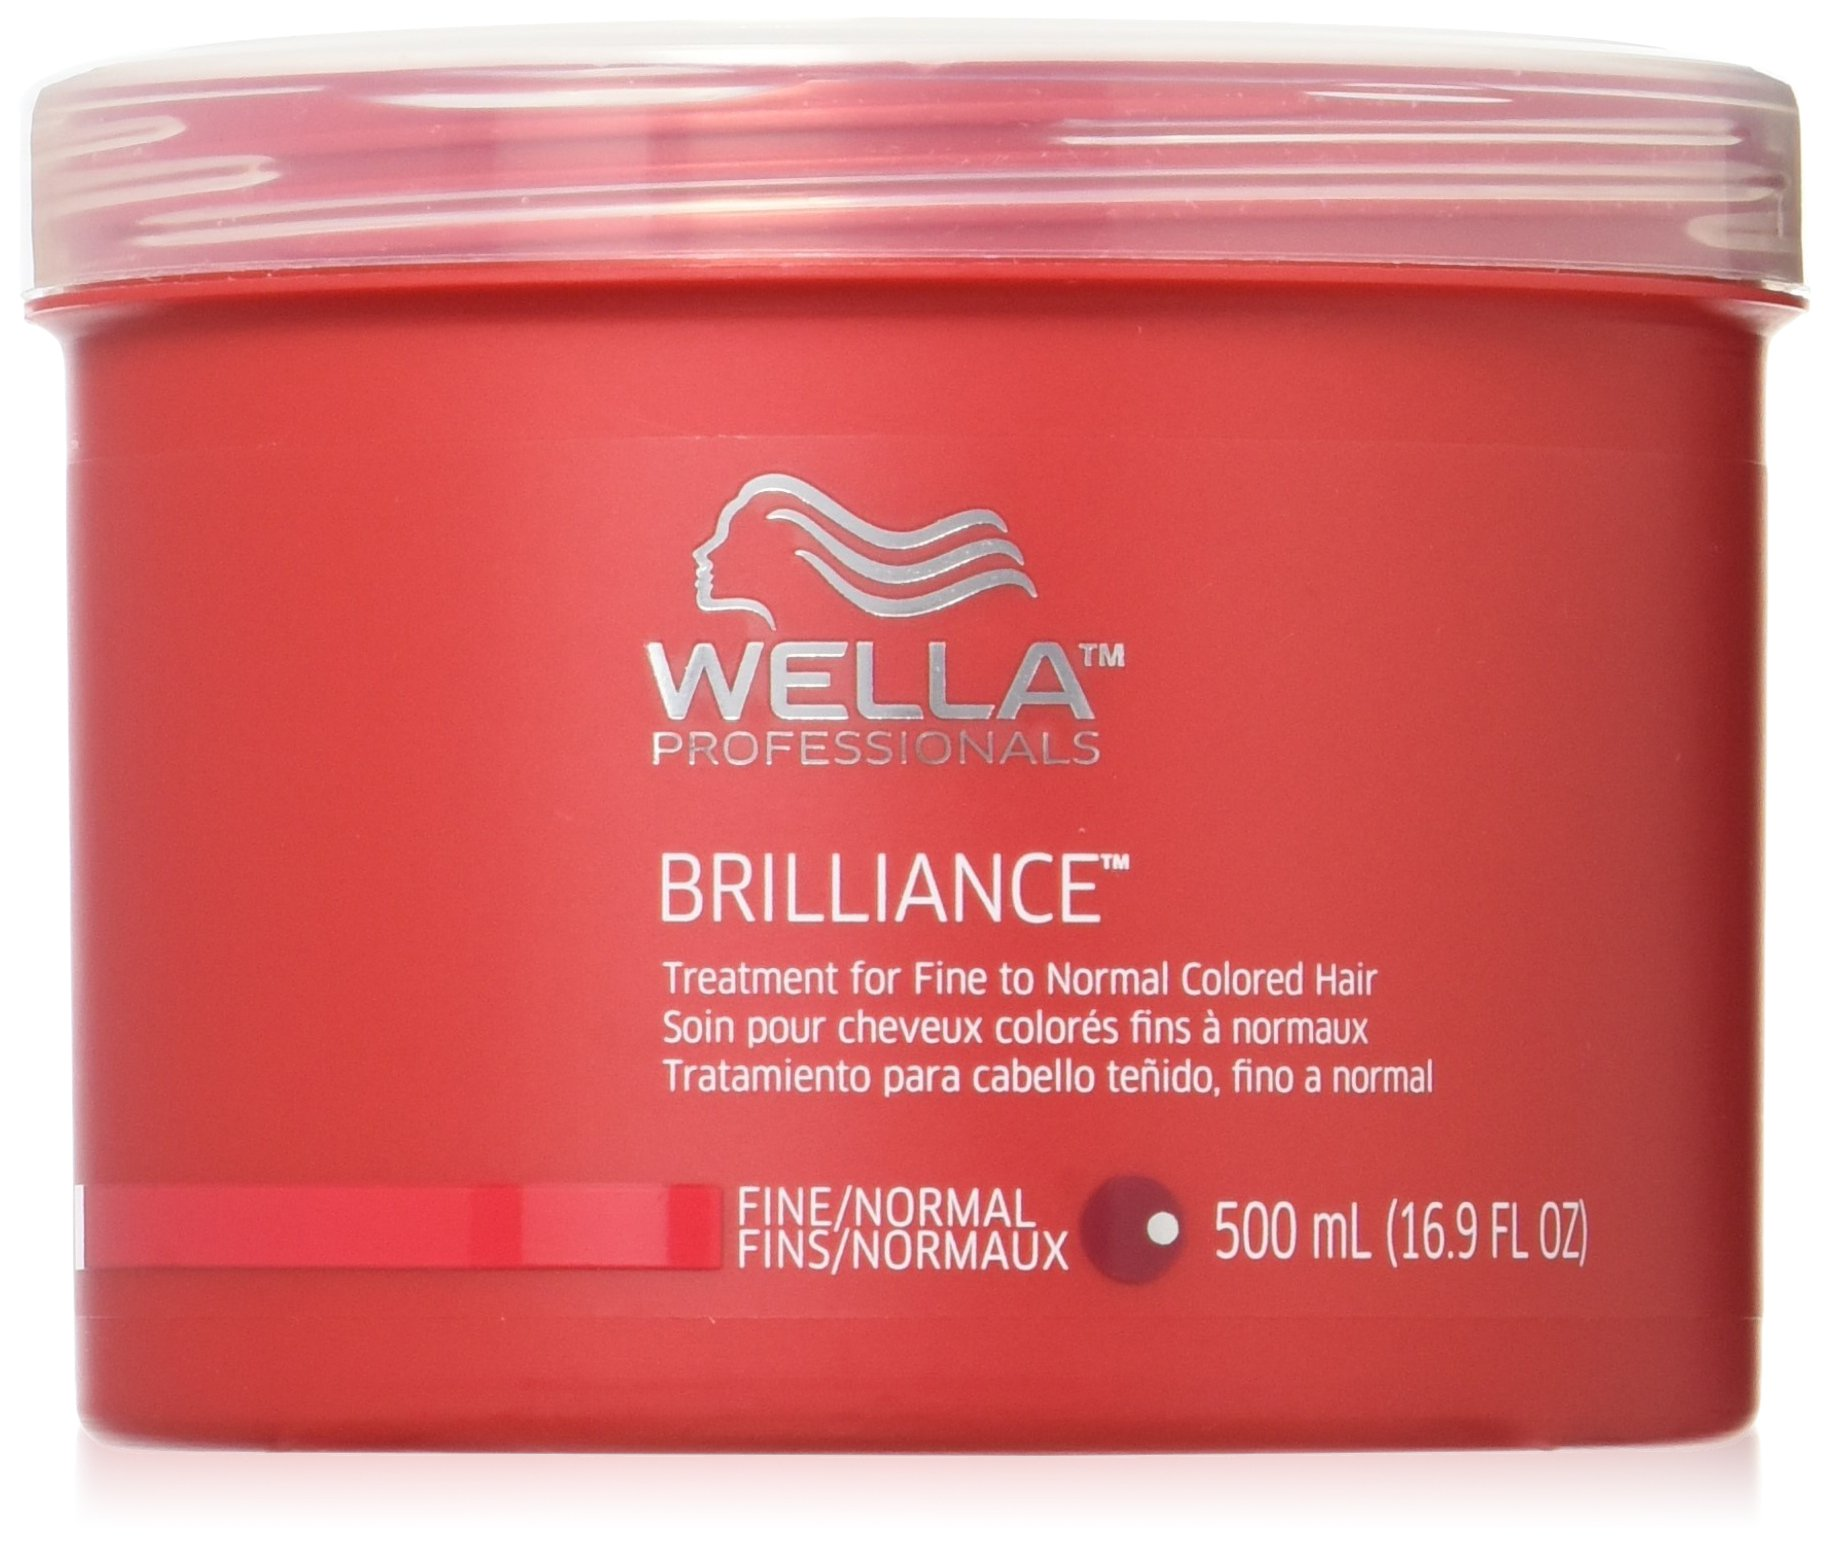 Wella Brilliance Treatment for Fine To Normal Colored Hair, 16.9 Ounce